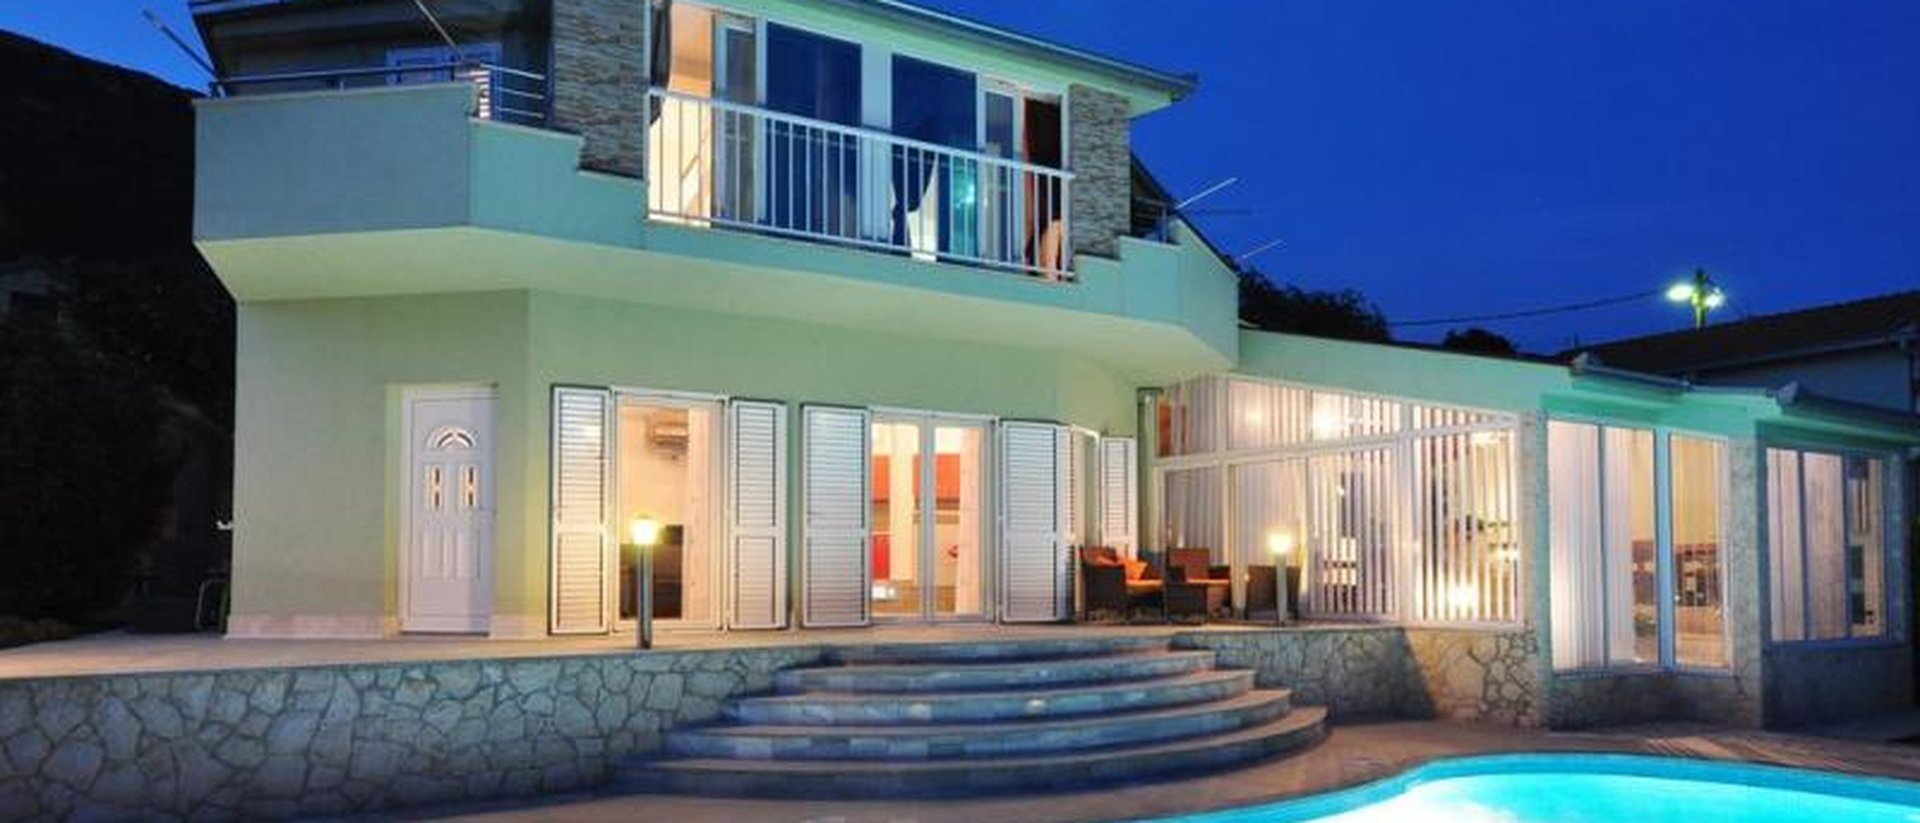 TWO VILLAS IN A PACKAGE WITH A MAGNIFICENT SEA VIEW, BETWEEN SPLIT AND TROGIR